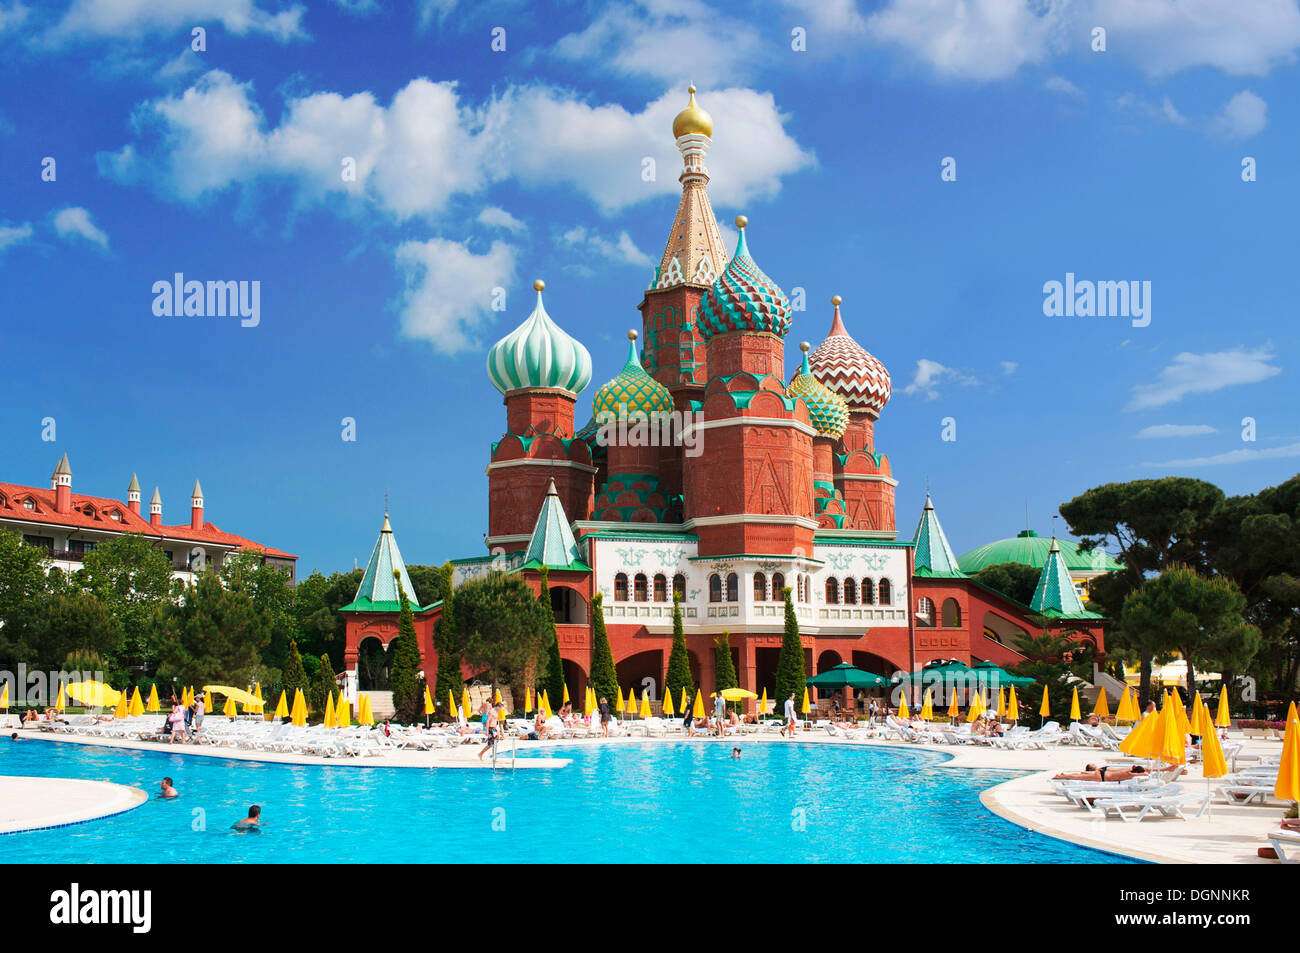 hotel wow kremlin palace in antalya